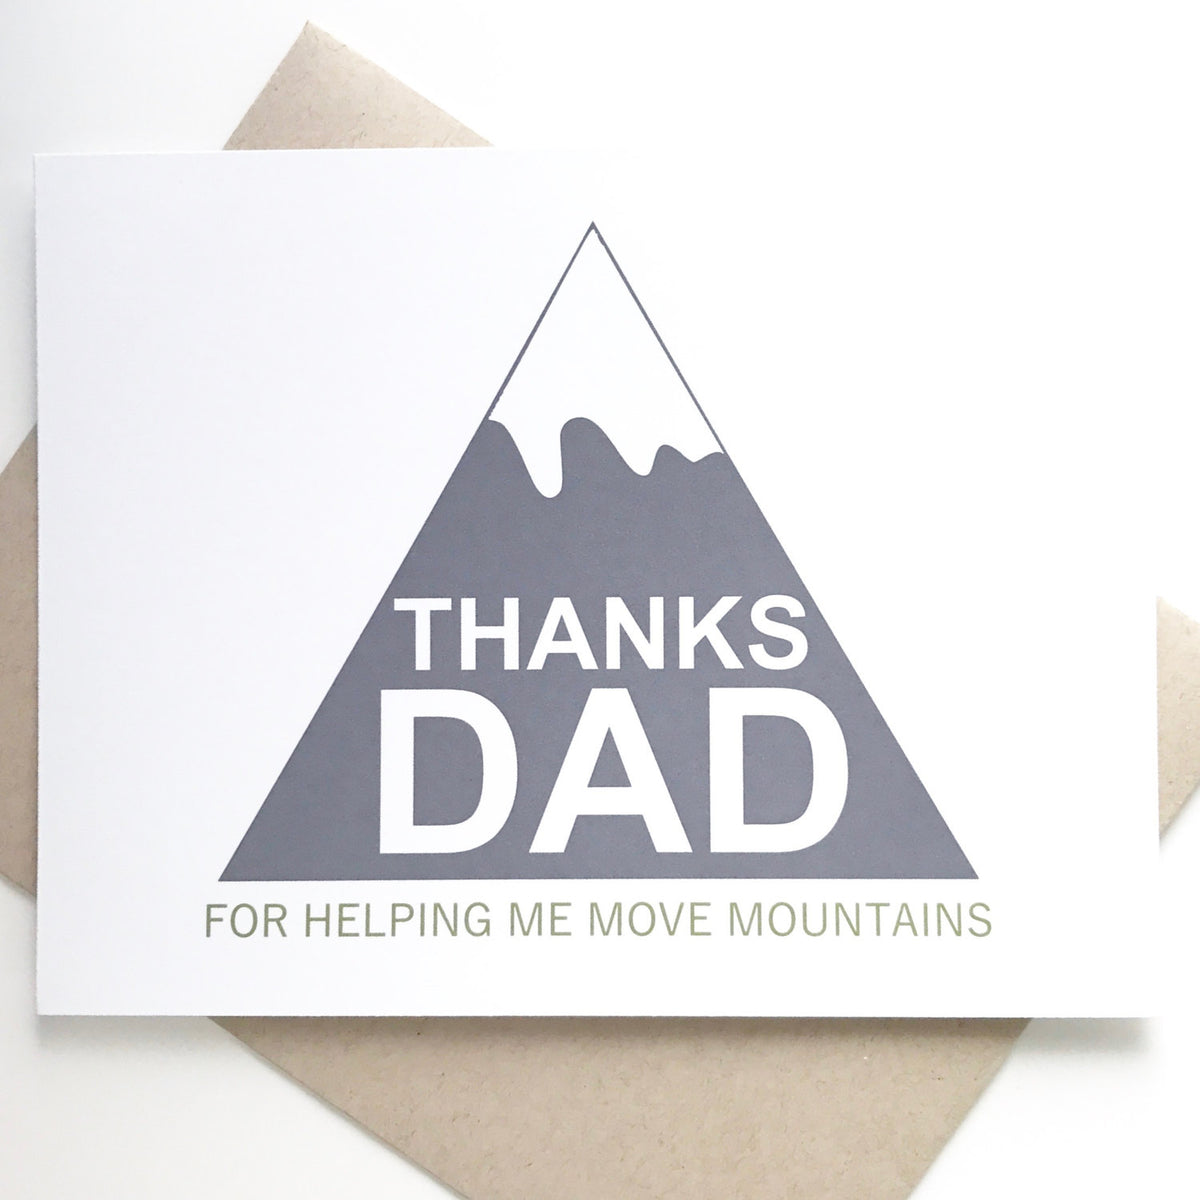 Thanks Dad for Helping Me Move Mountains